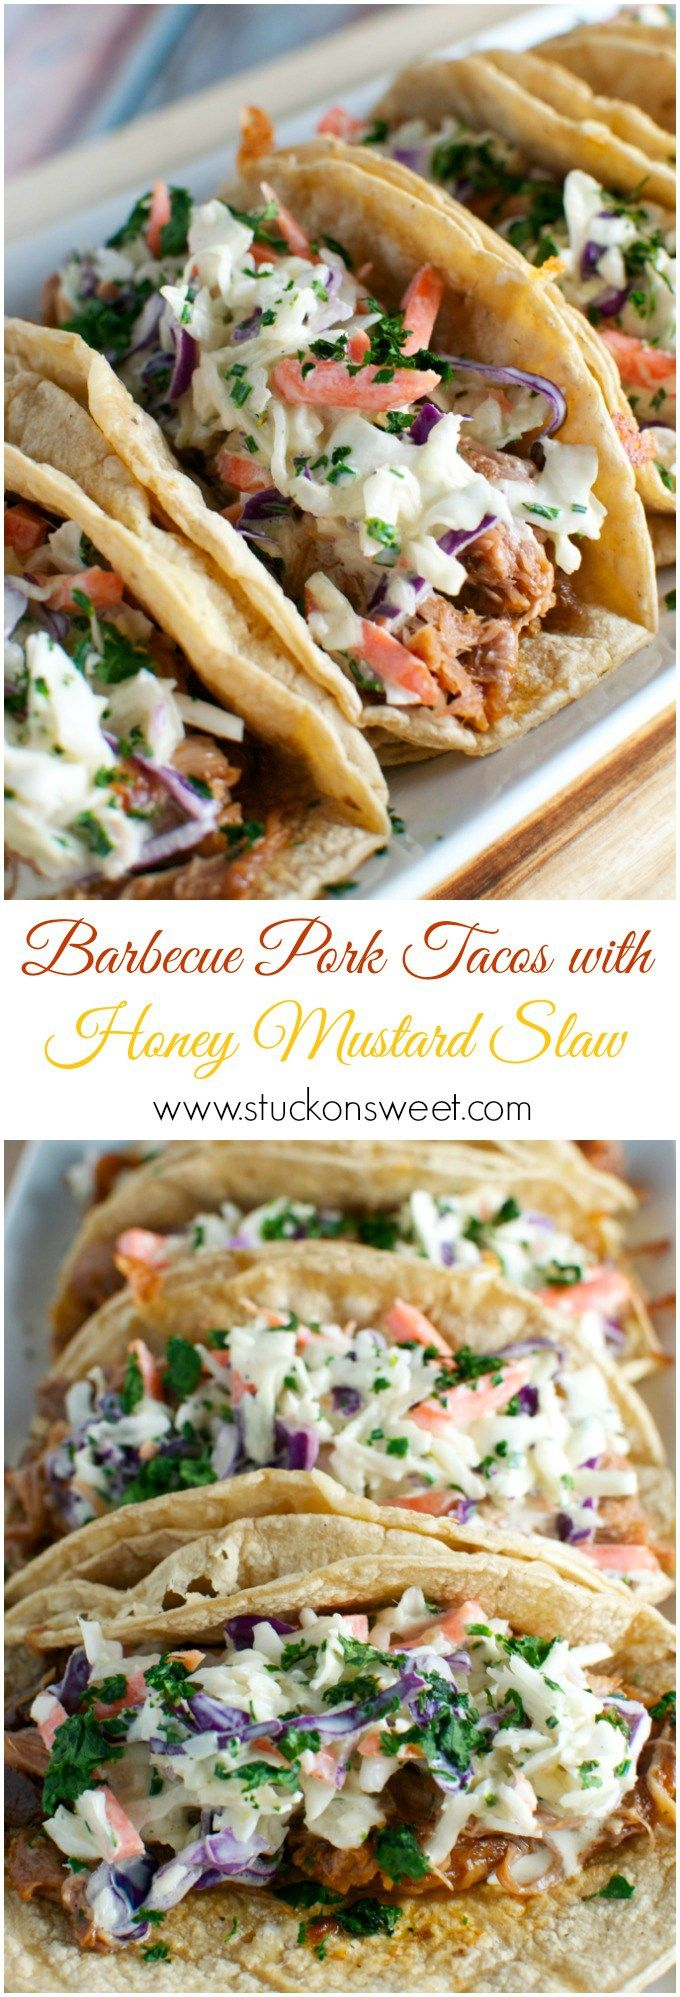 Barbecue Pork Tacos with Honey Mustard Slaw - Stuck On Sweet---going for the slaw!!  Looks amazing!!